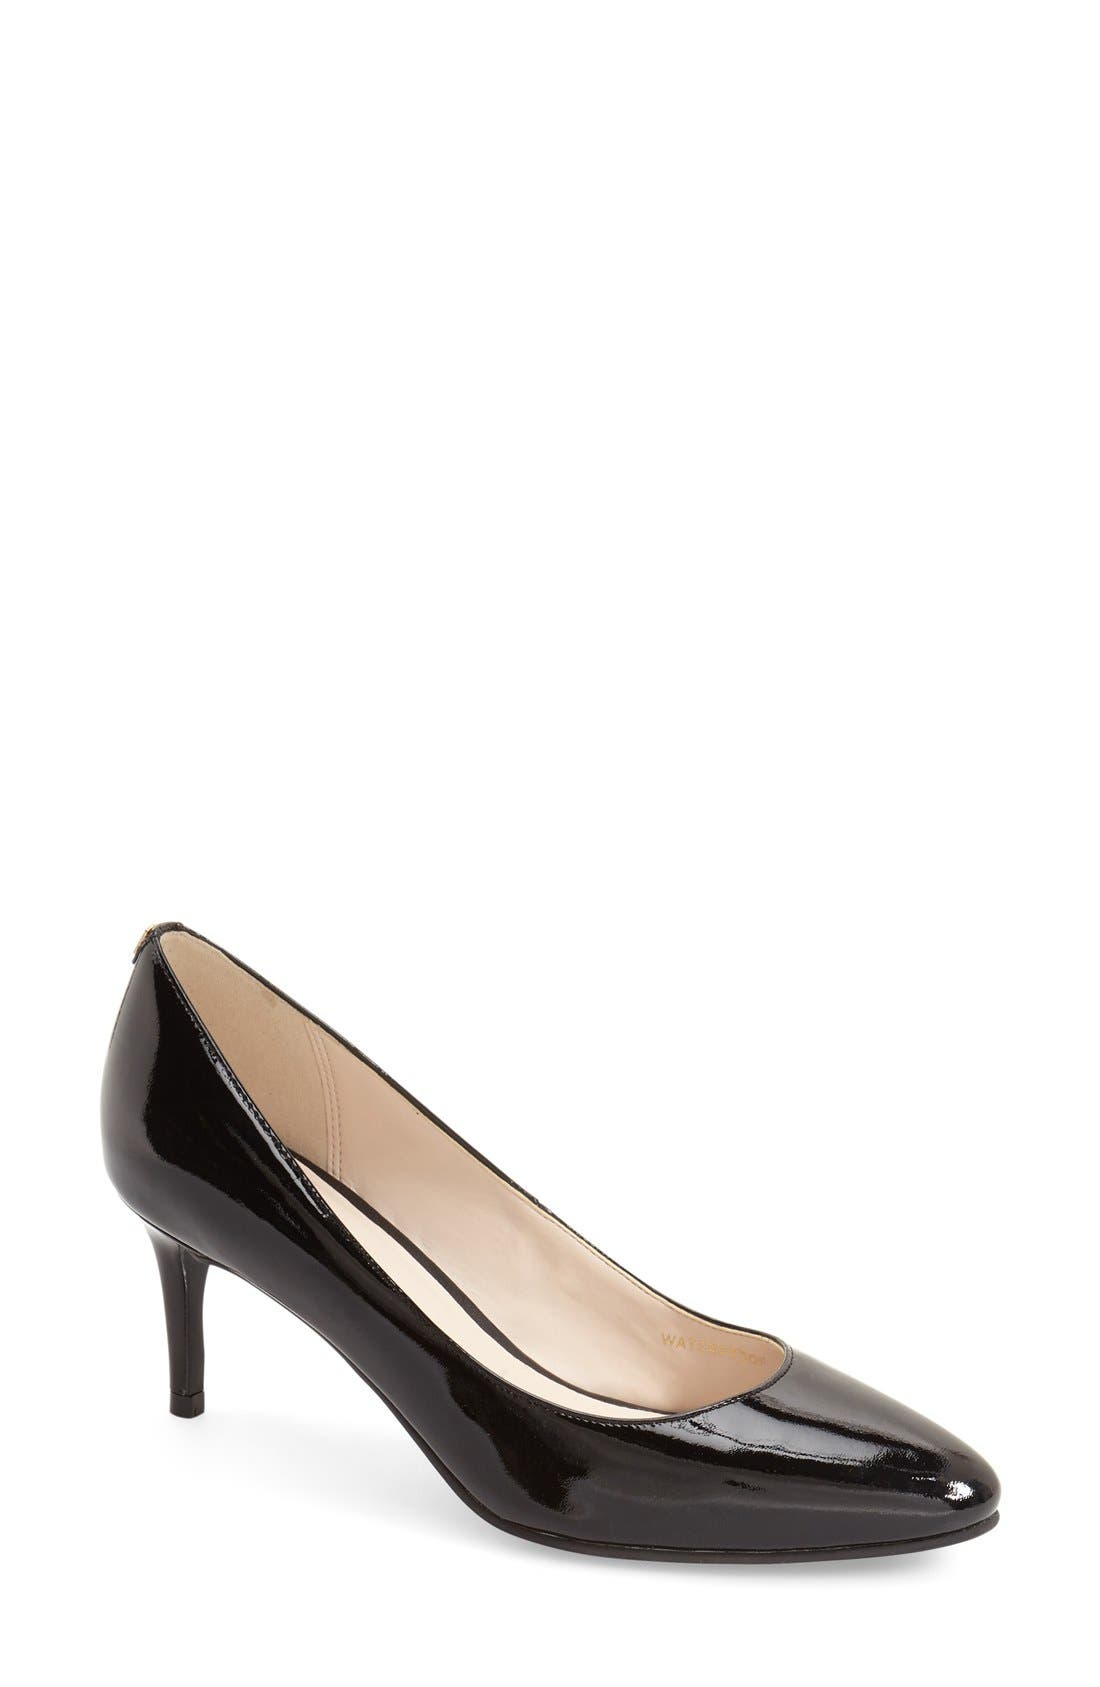 Alternate Image 1 Selected - Cole Haan 'Kelsey' Waterproof Pump (Women)